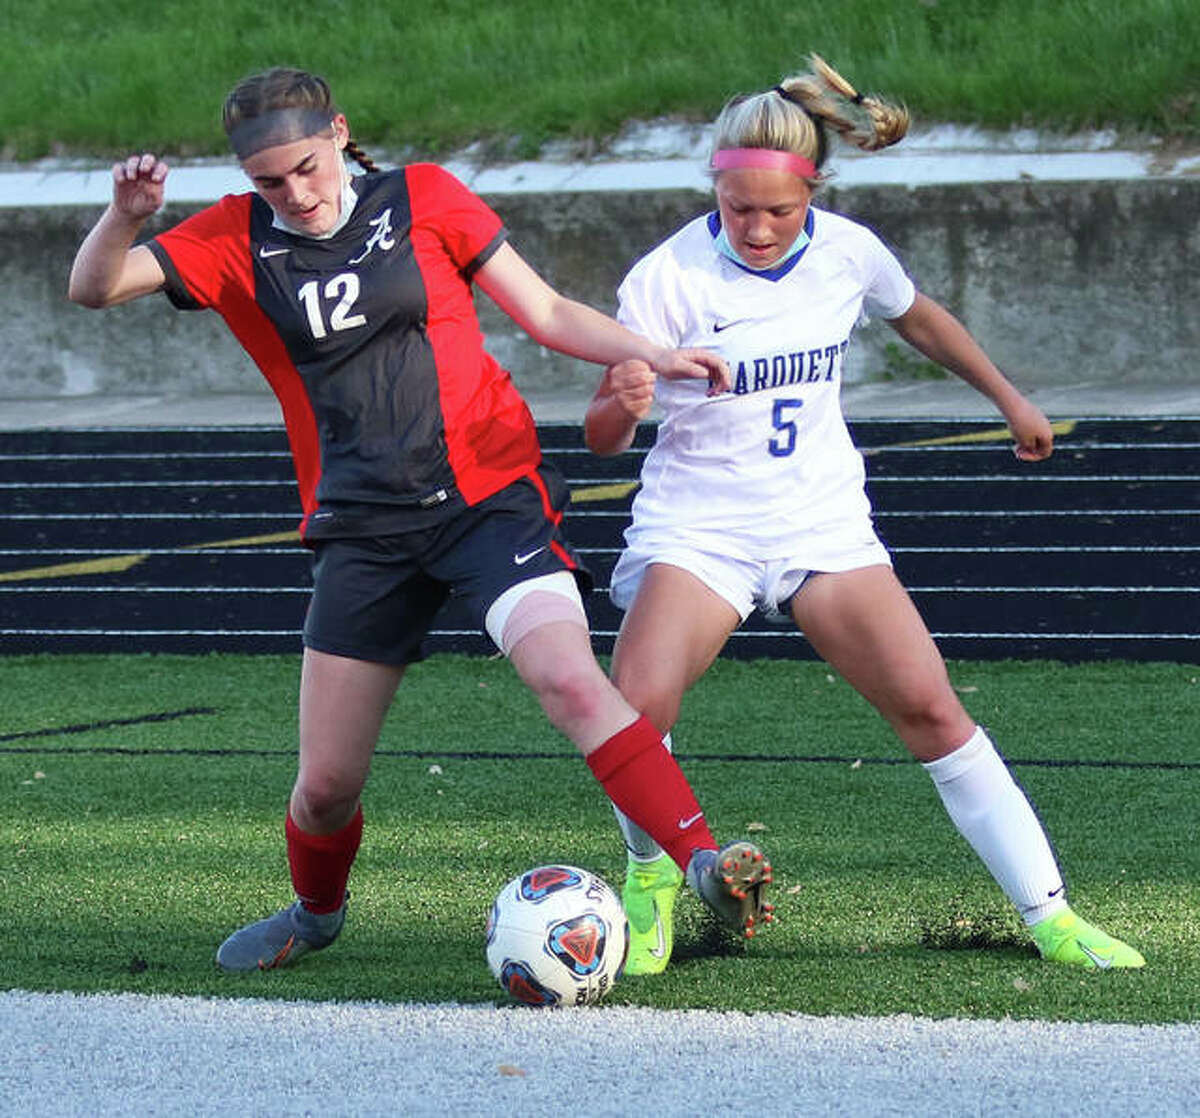 Marquette's Clare Antrainer (5) and Alton's Ainsley Redman battle for possession of the ball deep in Alton's end in the first half Wednesday at Public School Stadium in Alton.